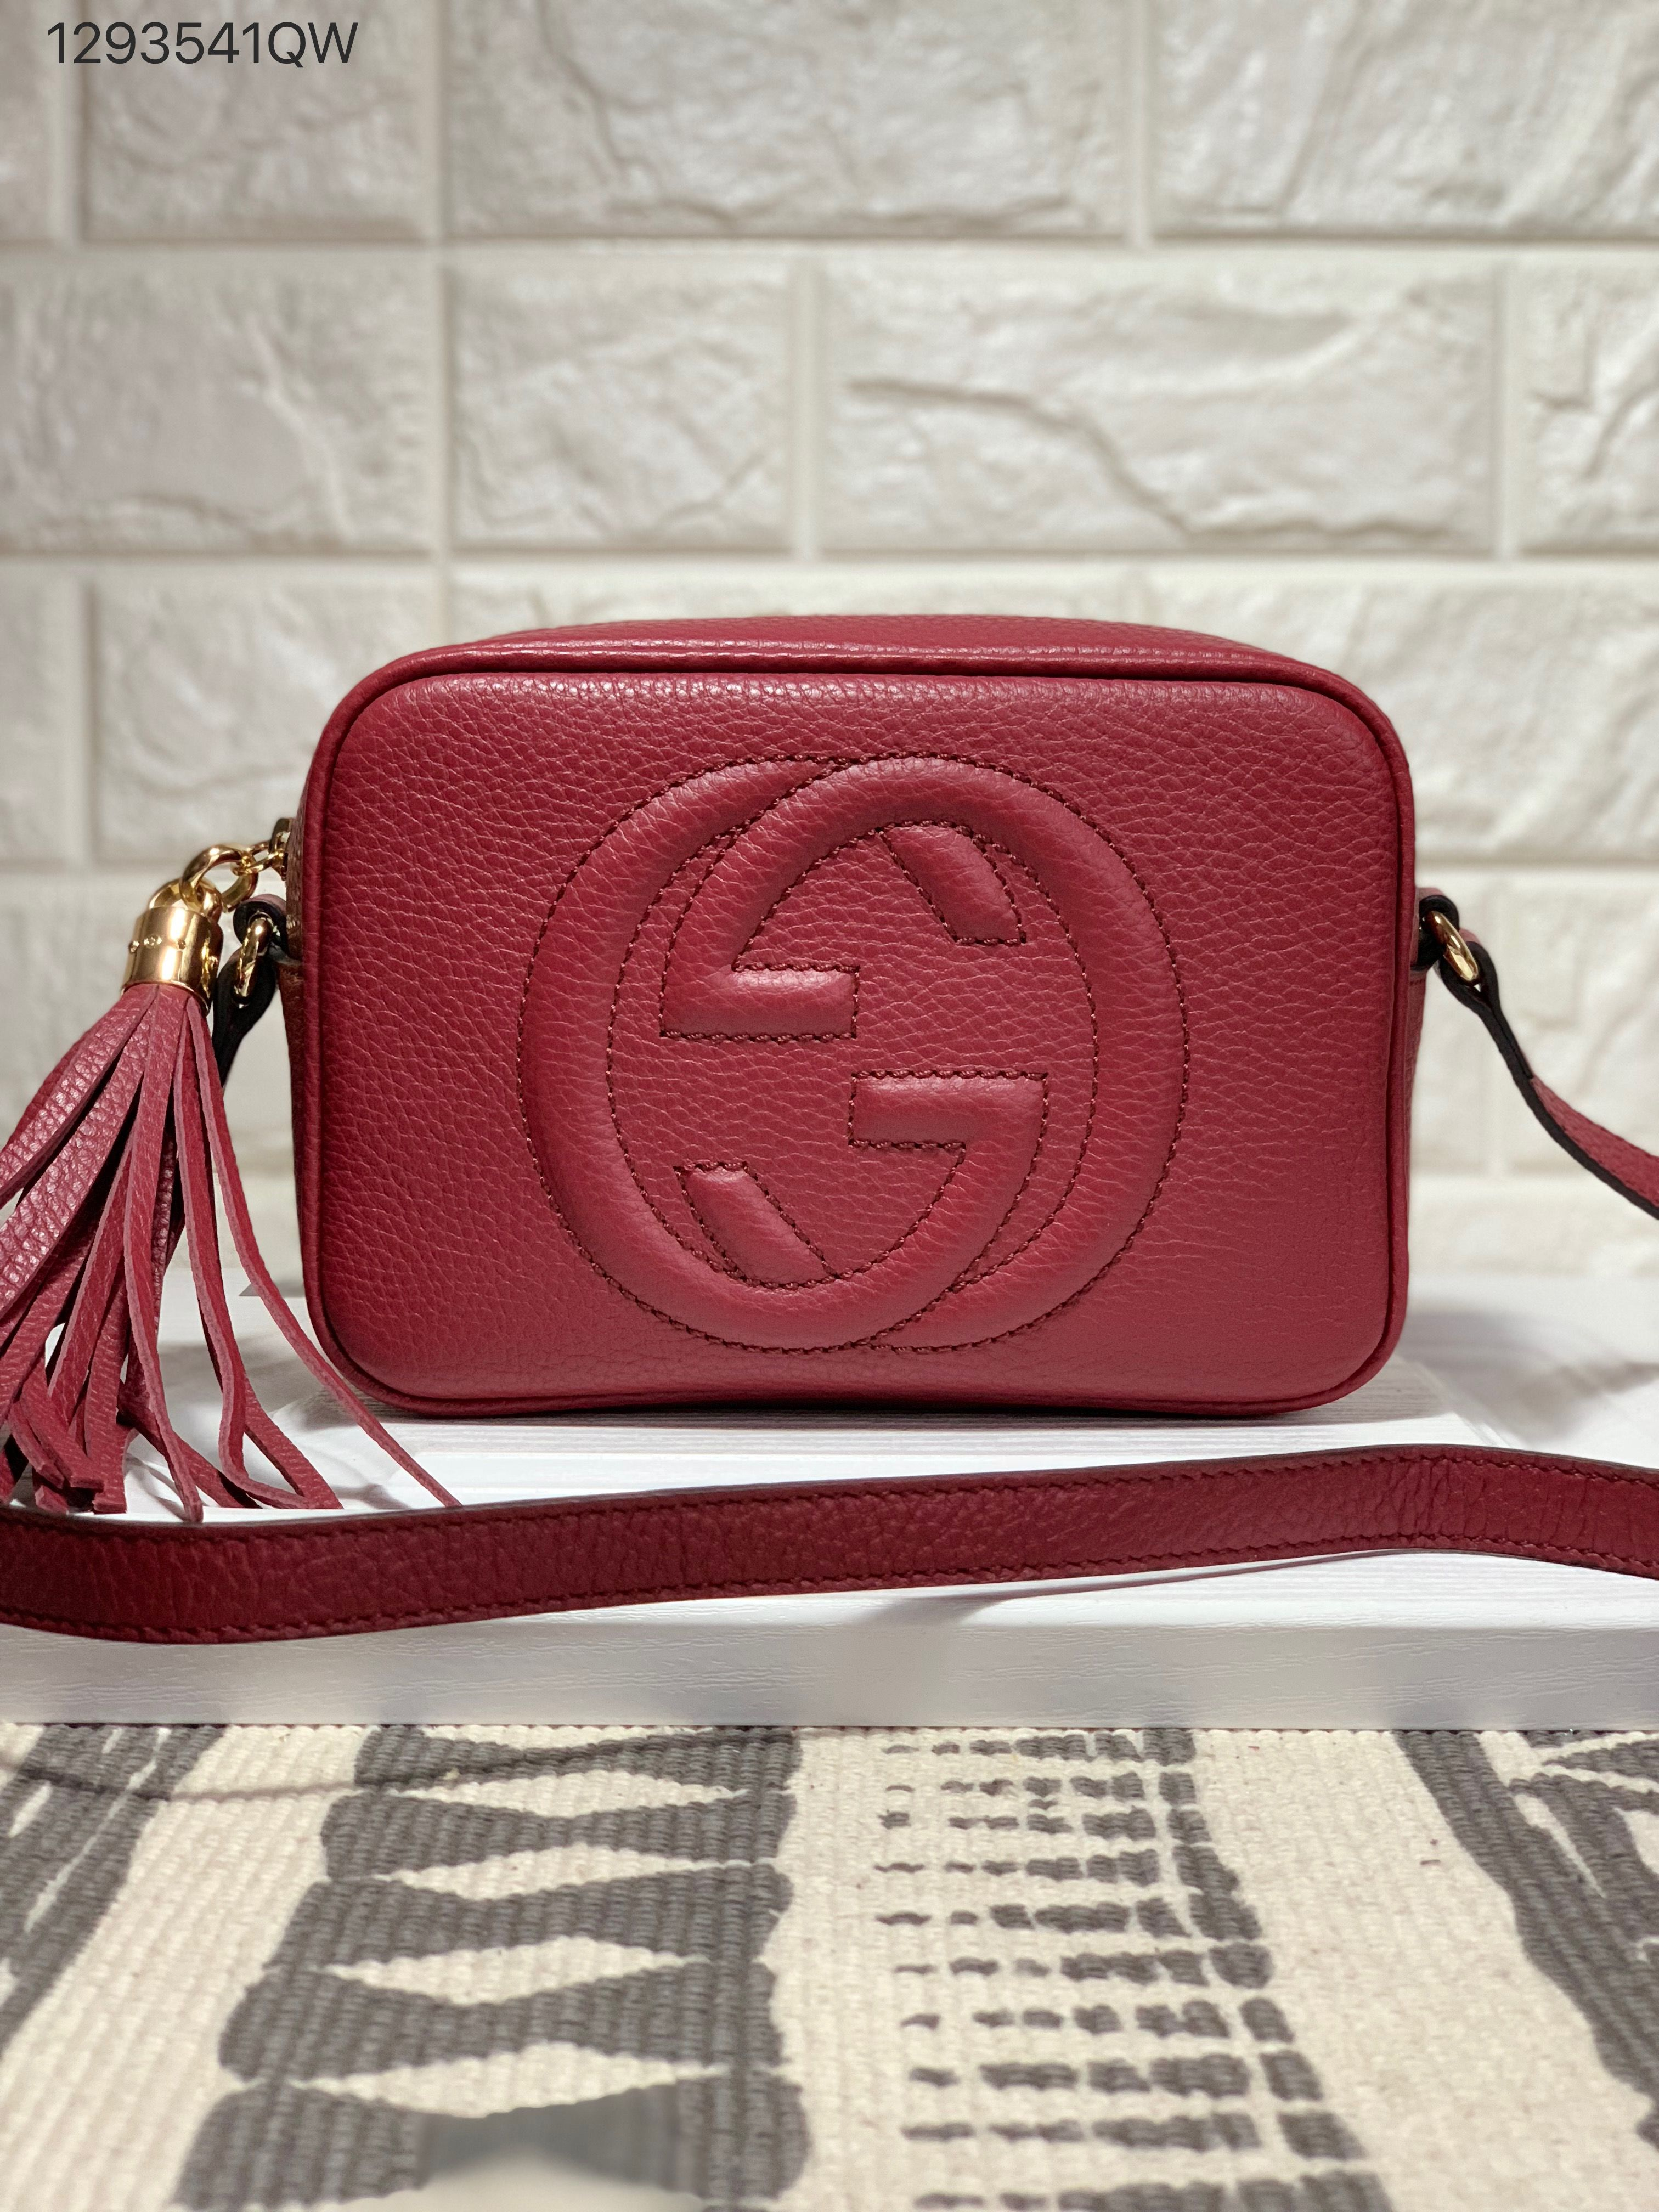 6f72403a4e09 Gucci soho disco cross body camera bag burgundy | Gucci bags | Gucci ...